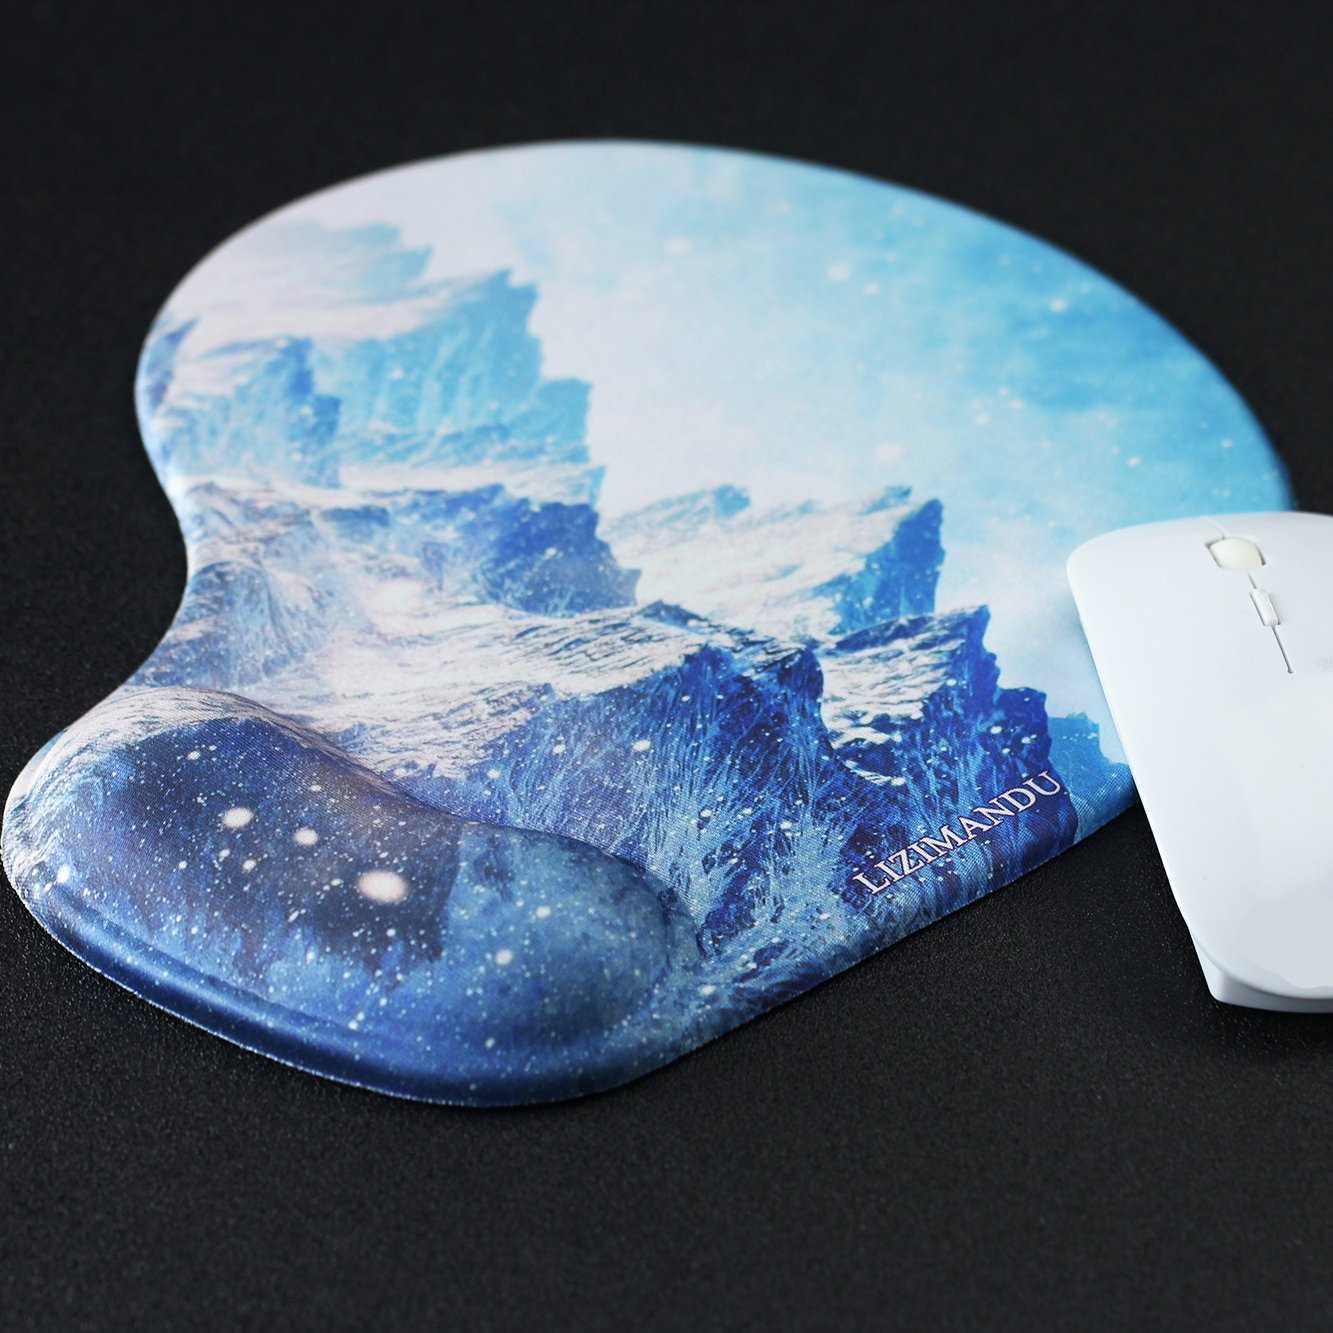 Lizimandu Non Slip Mouse Pad Wrist Rest For Office, Computer, Laptop & Mac - Durable & Comfortable & Lightweight For Easy Typing & Pain Relief-Ergonomic Support(Snow Mountain) by lizimandu (Image #5)